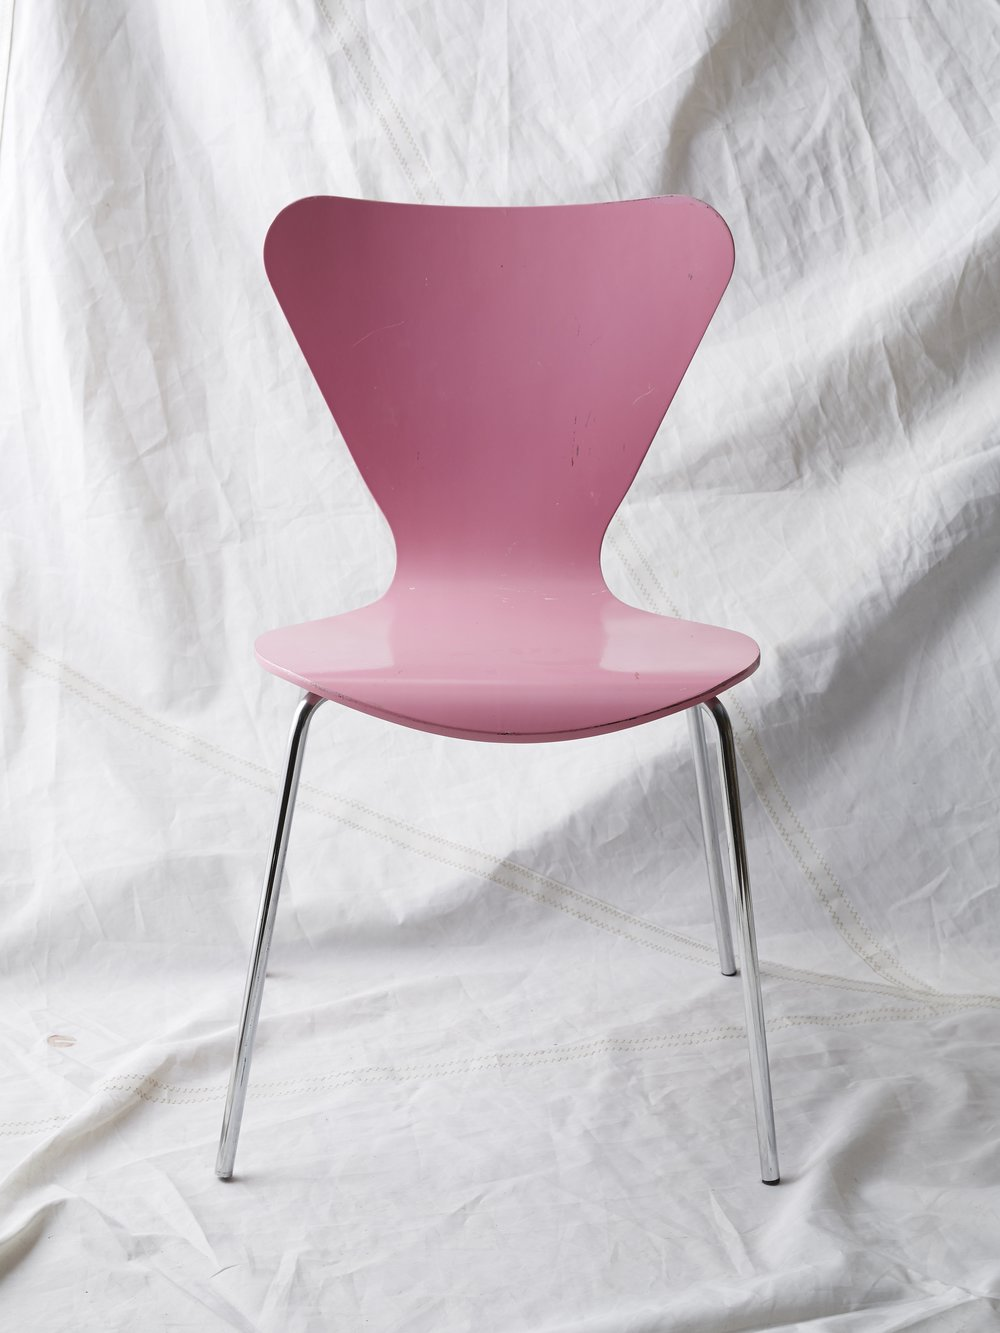 "CH019 Arne Jacobson pink  chair 32"" H x 18"" W x 19"" D $75/week Set of 1"